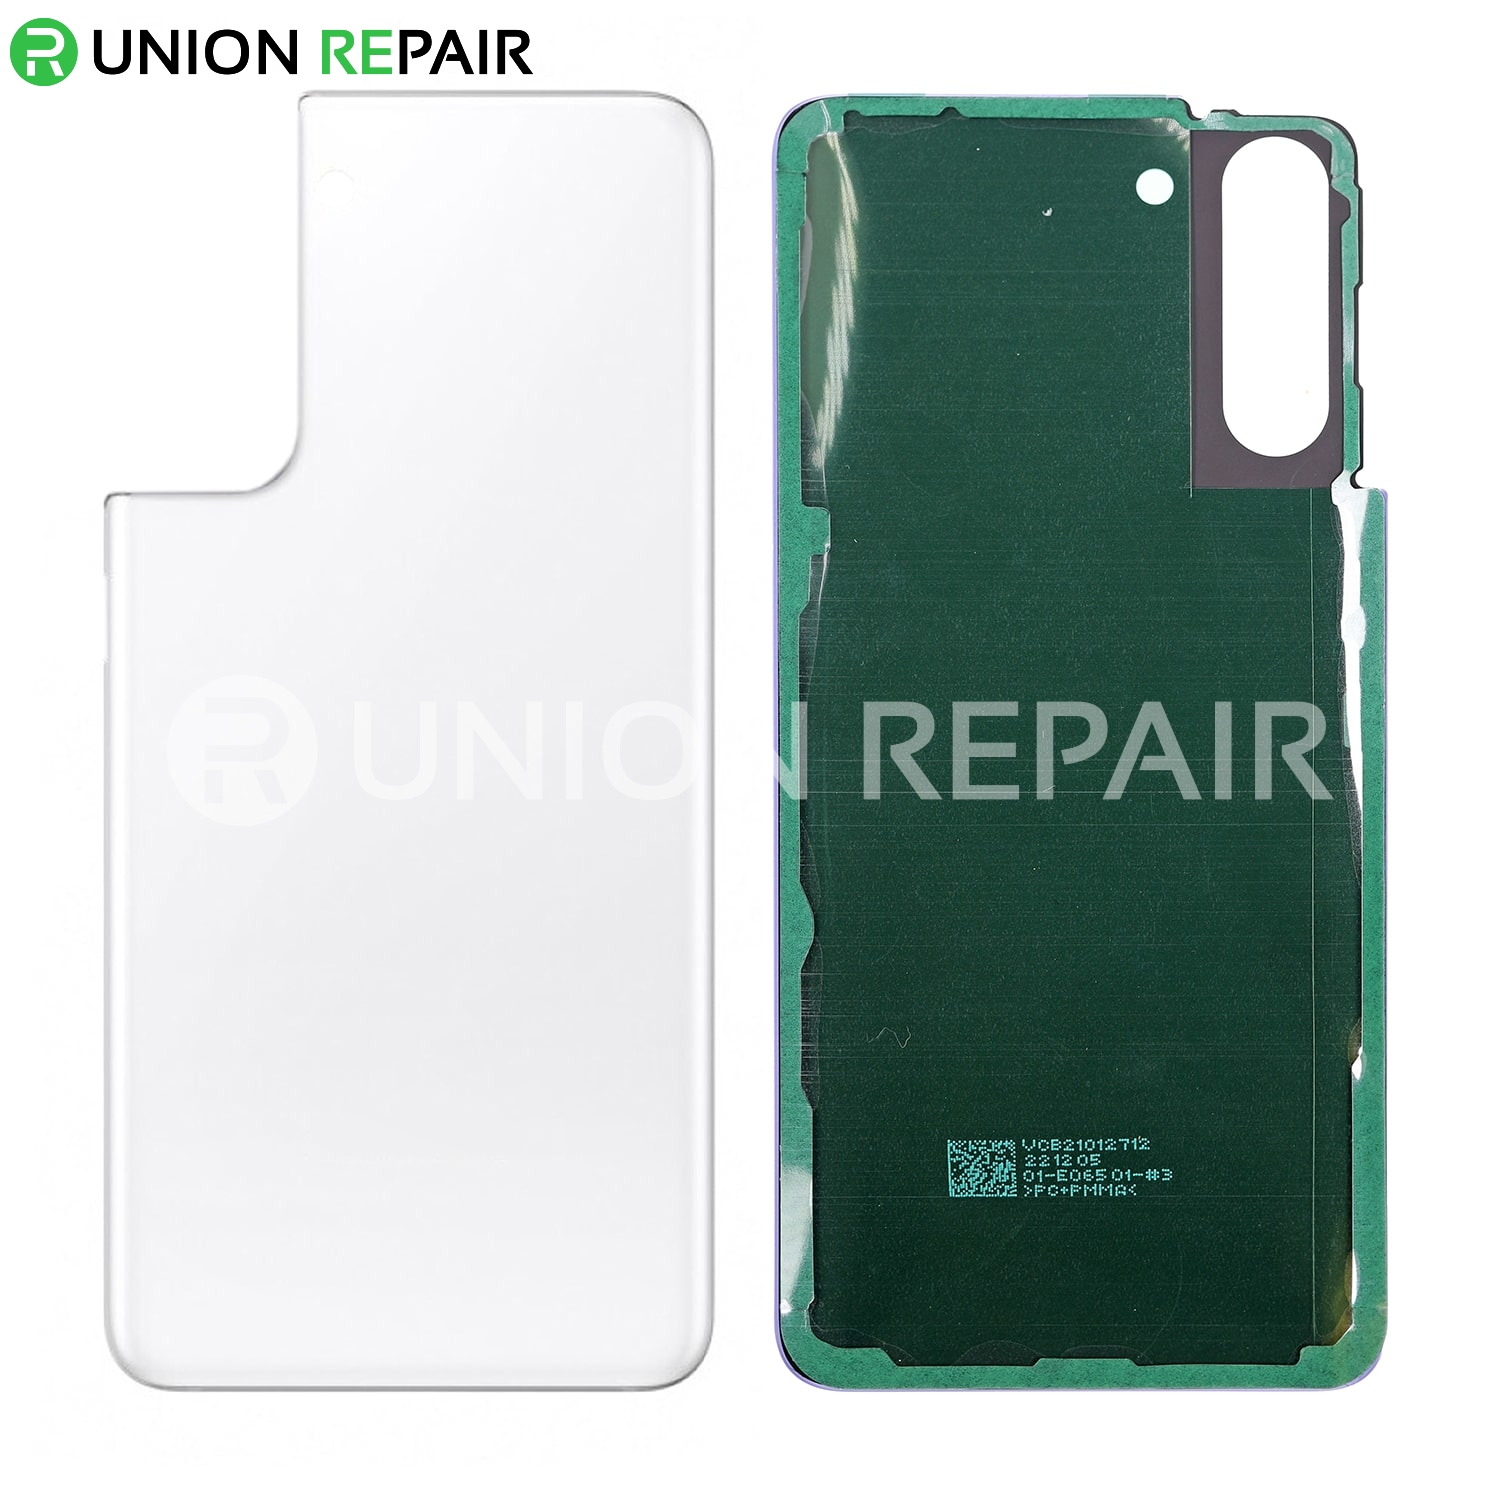 Replacement for Samsung Galaxy S21 Battery Door - White